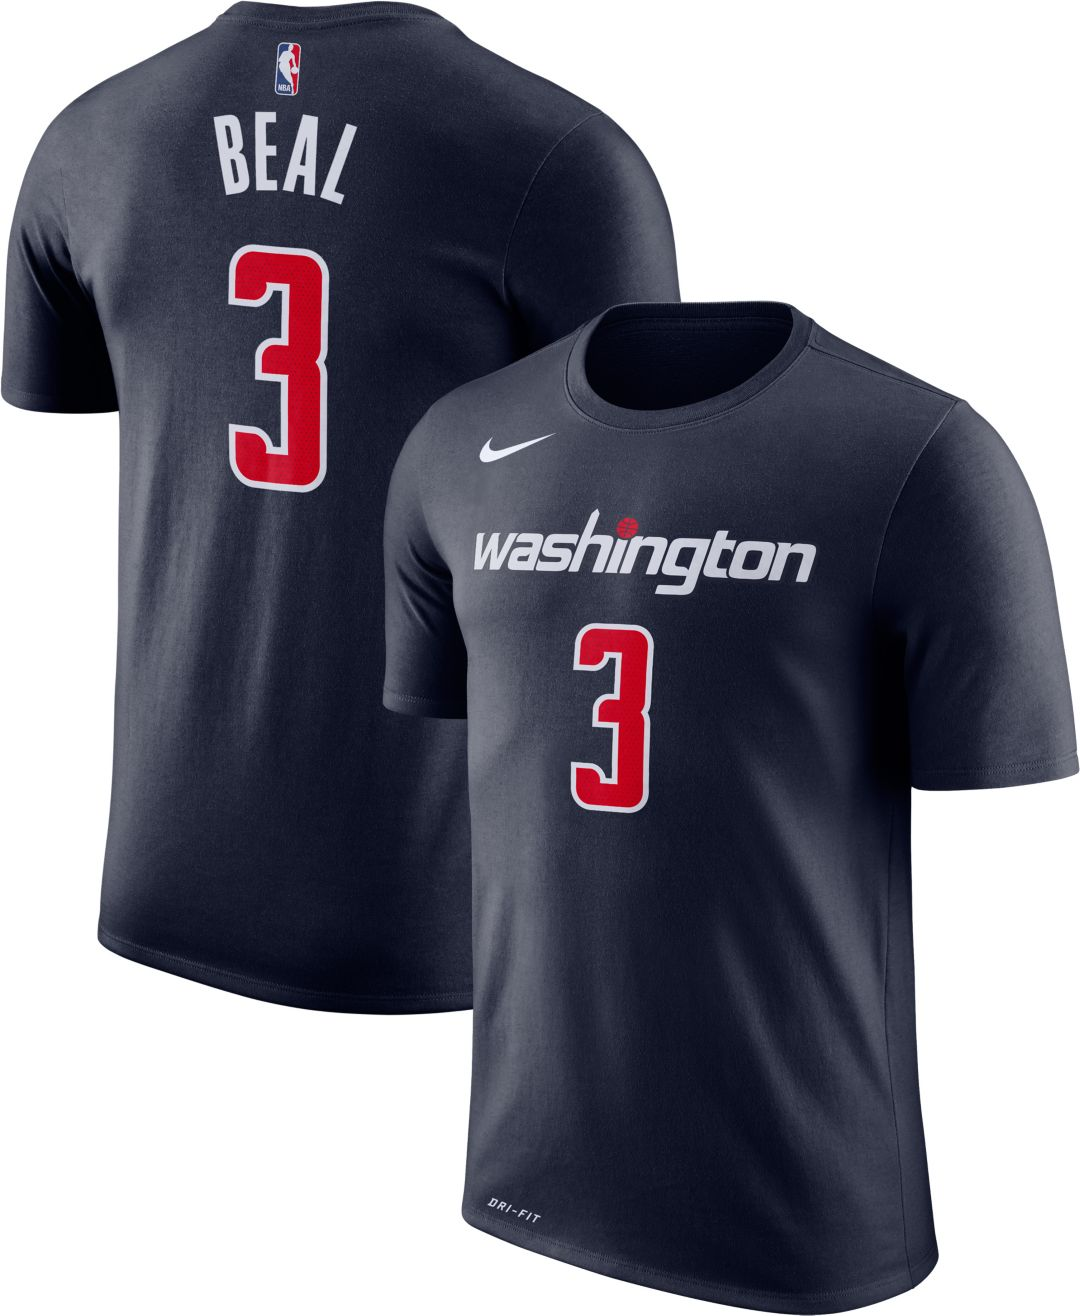 sale retailer 64eaa f982a Nike Youth Washington Wizards Bradley Beal #3 Dri-FIT Navy T-Shirt